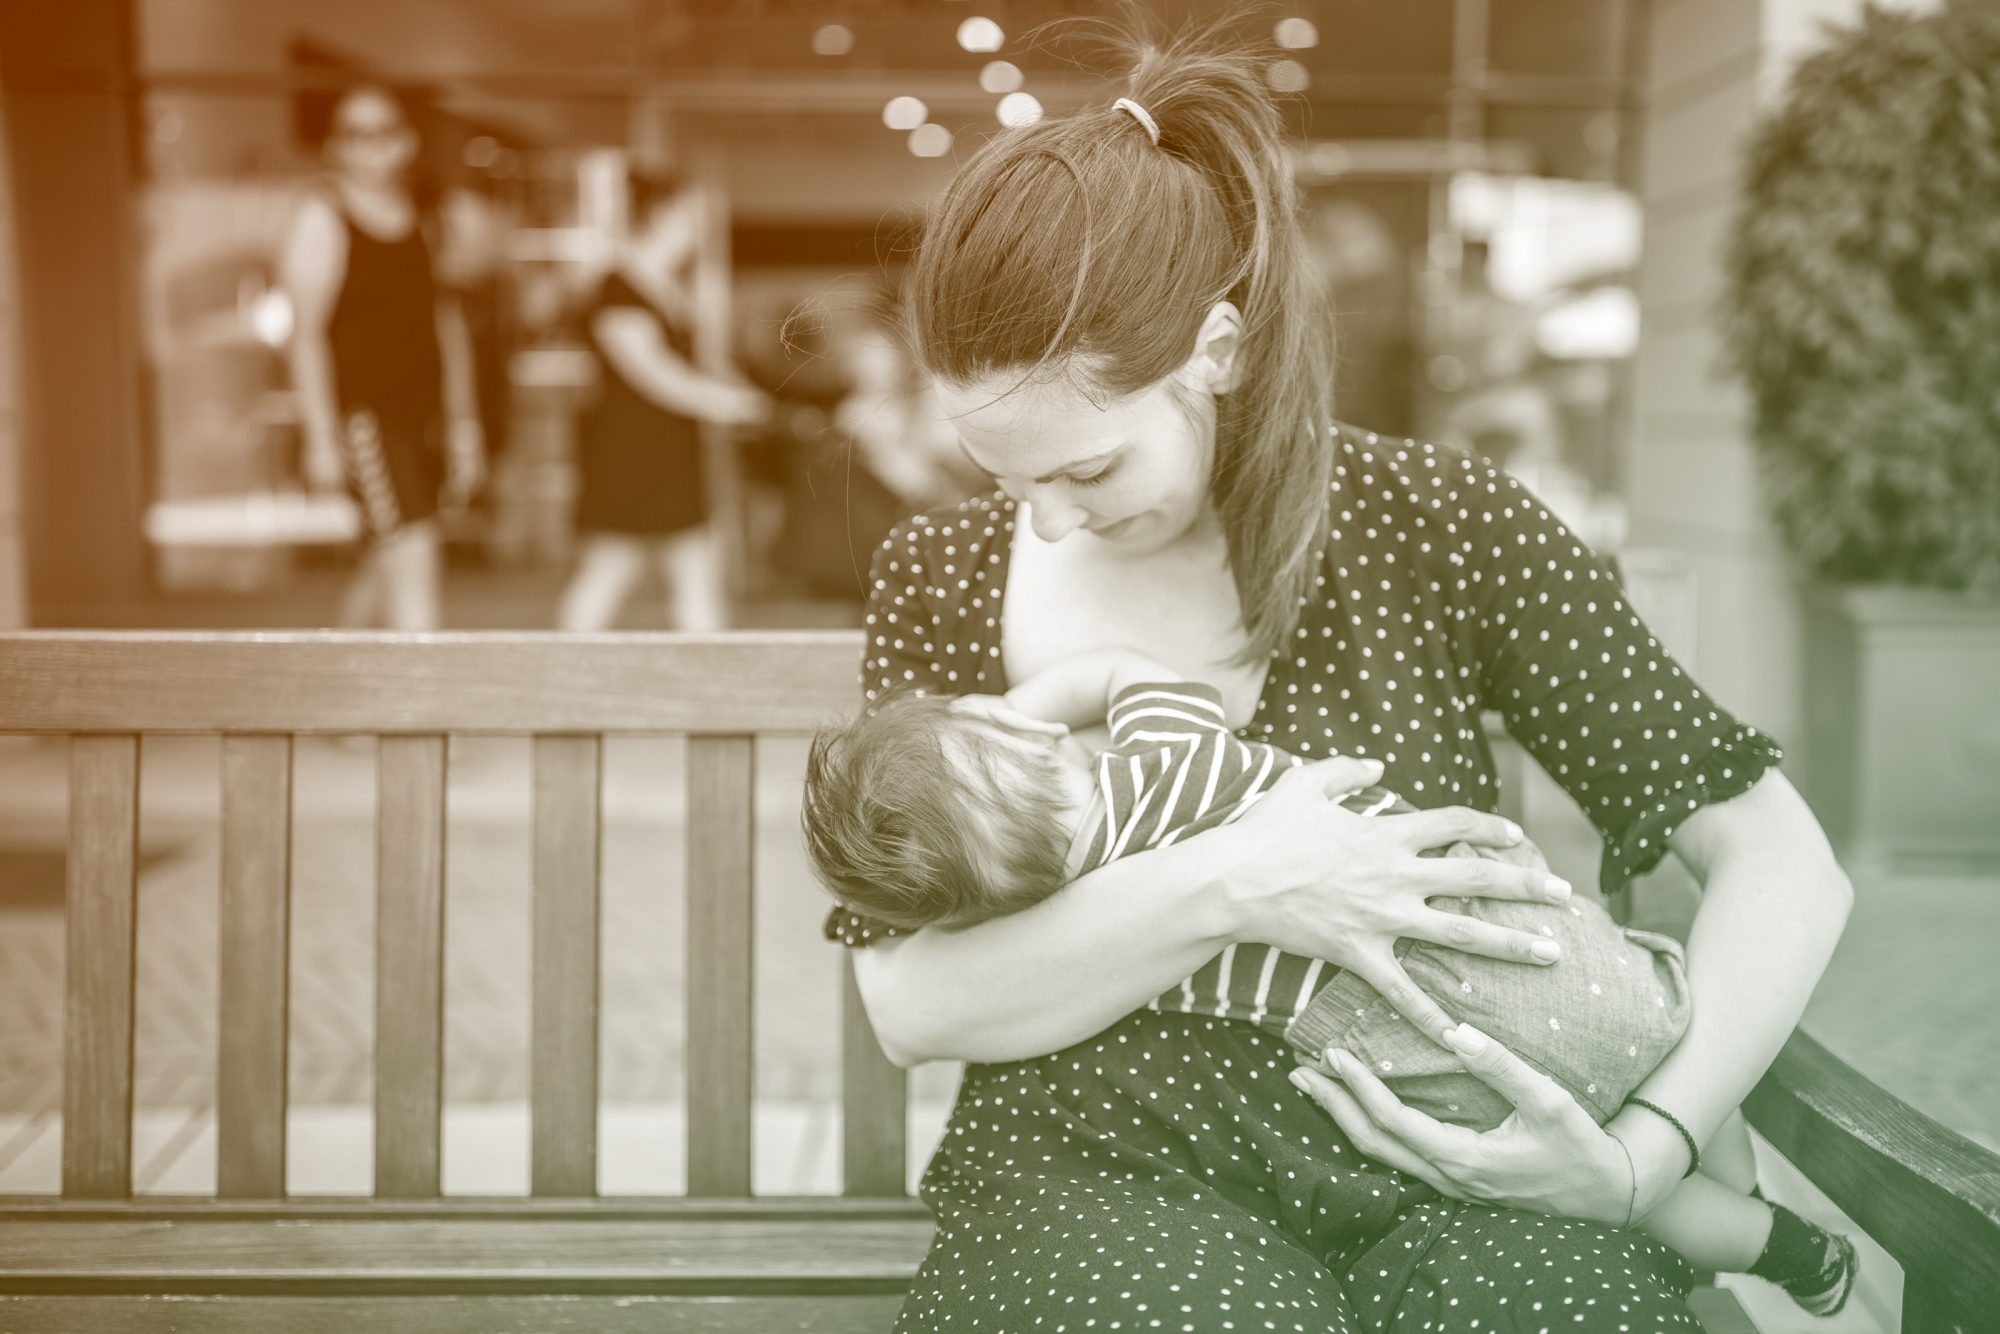 A Crash Course in Breastfeeding Laws for New Moms